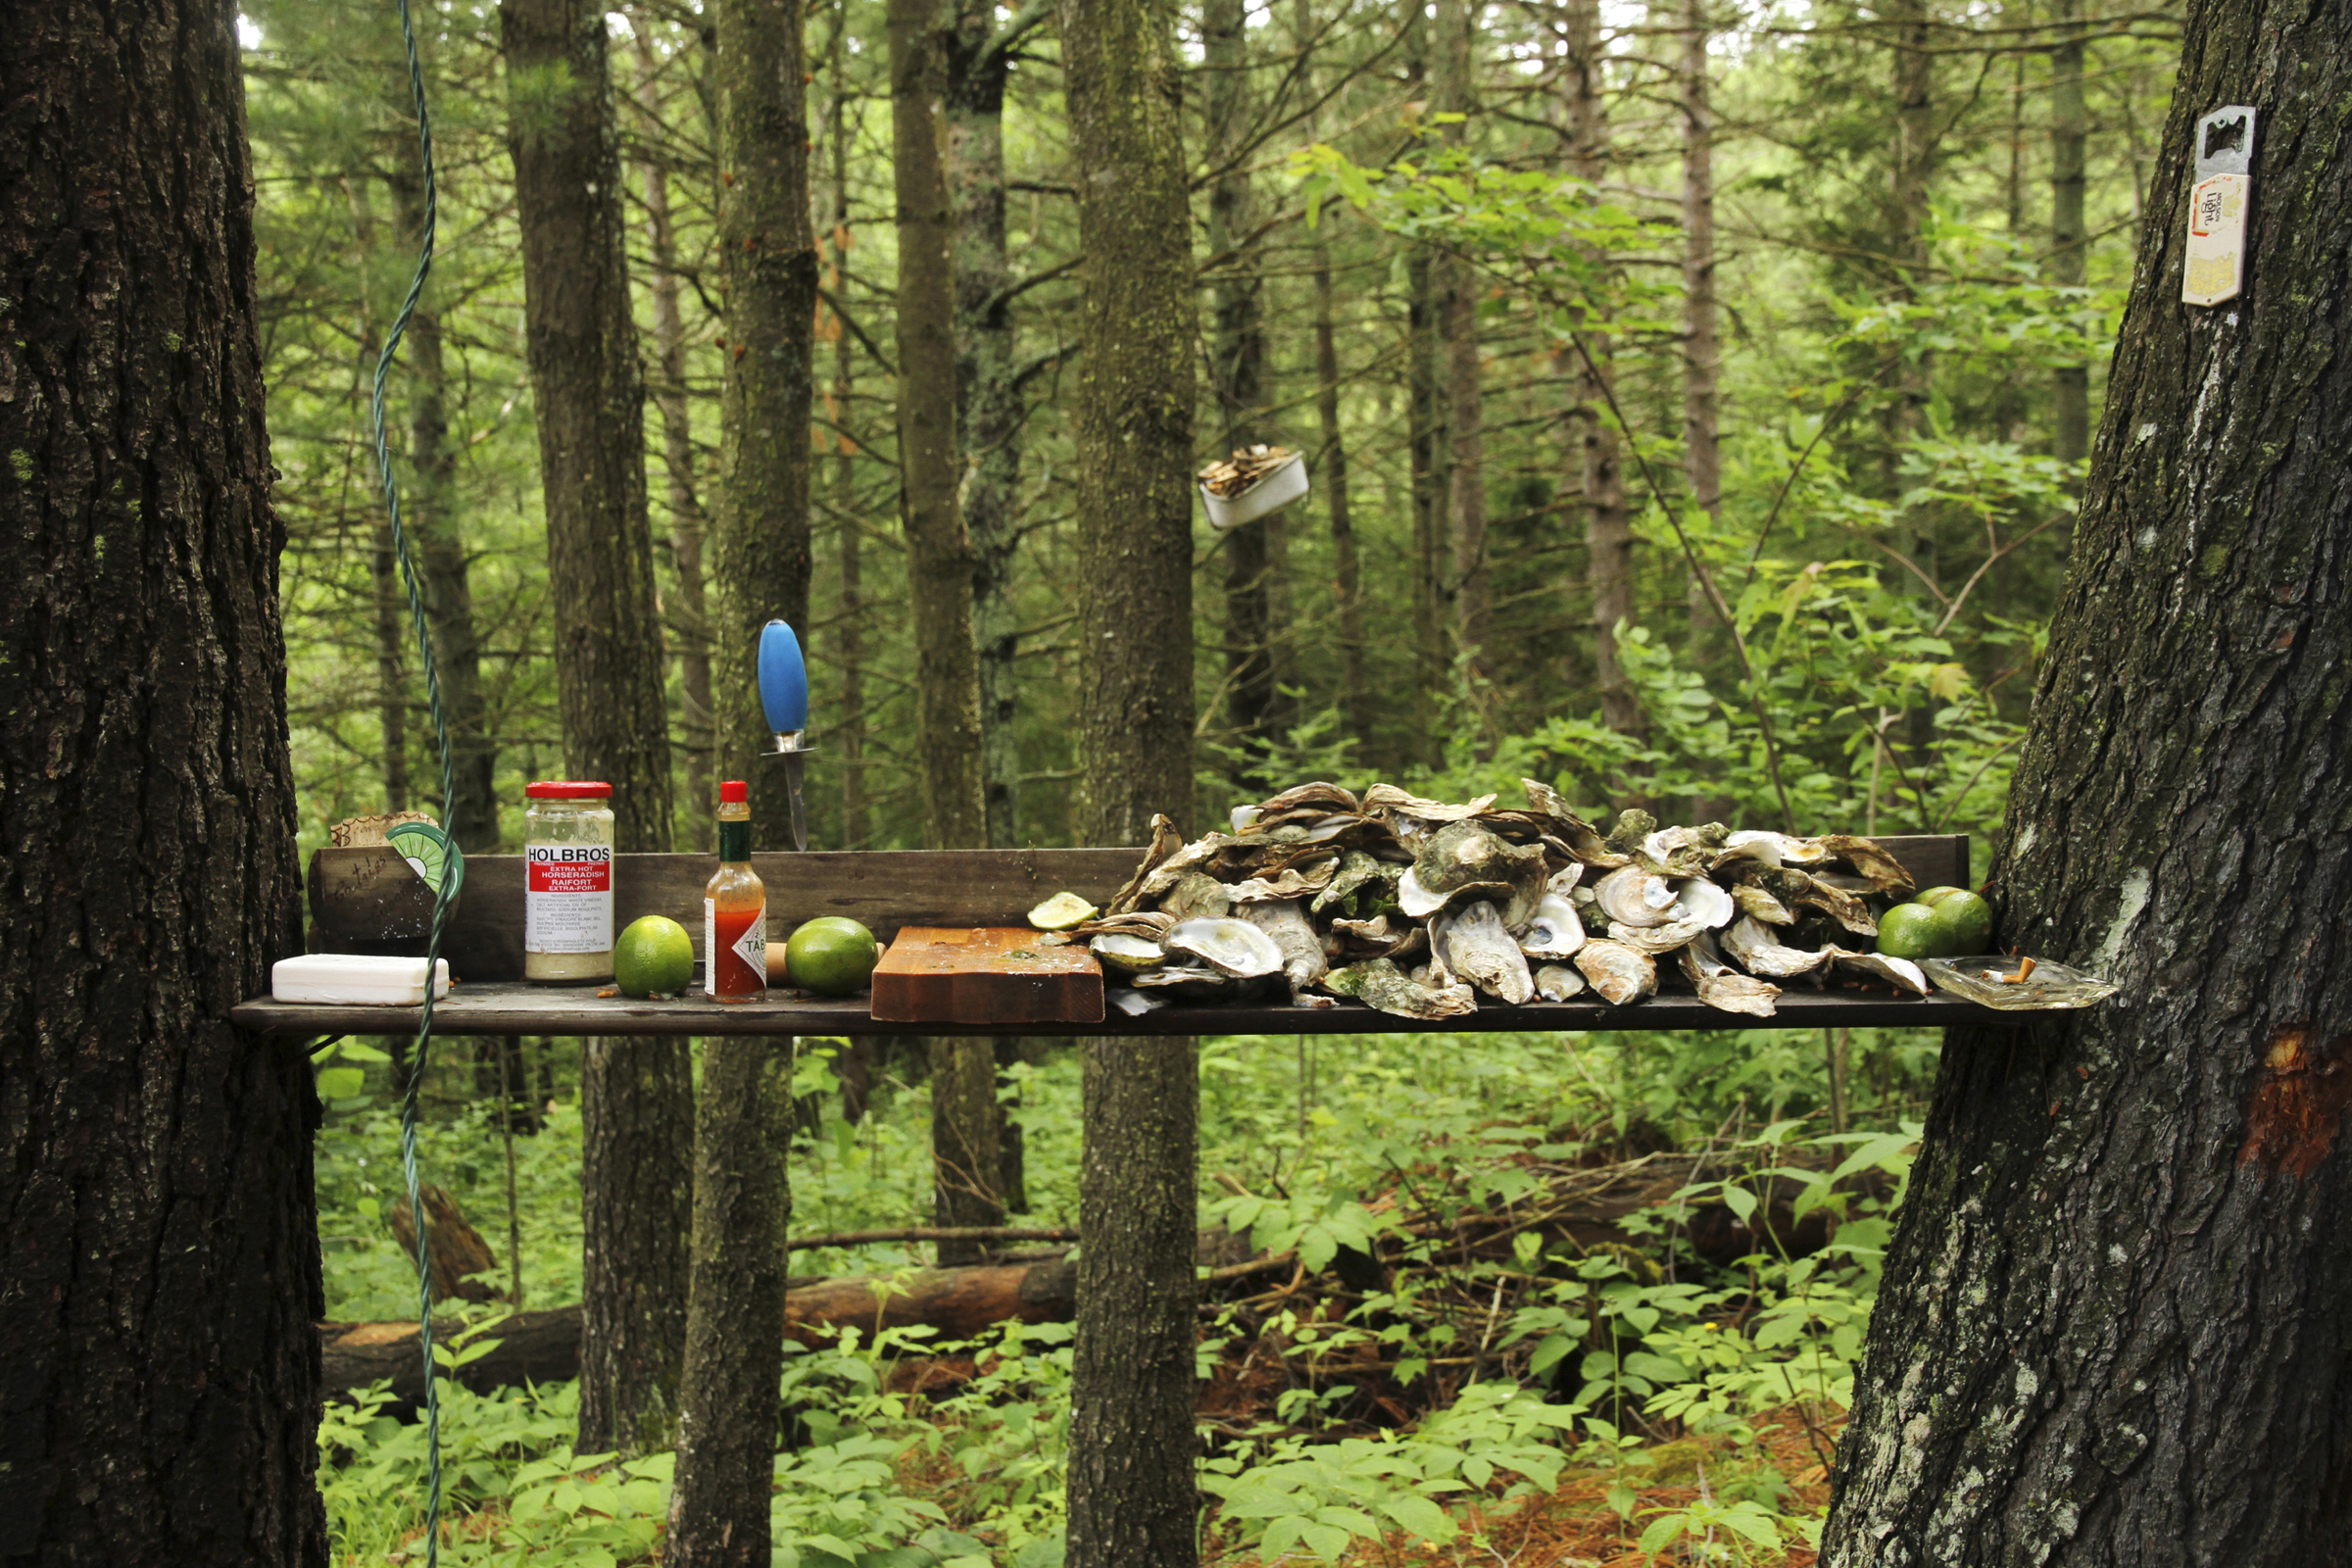 Dean Baldwin,Baptiste Lake, Milne Cottage, Malpeque Oysters, 2012, C-Print, Edition Edition 2/5, 36 x 54 inches.